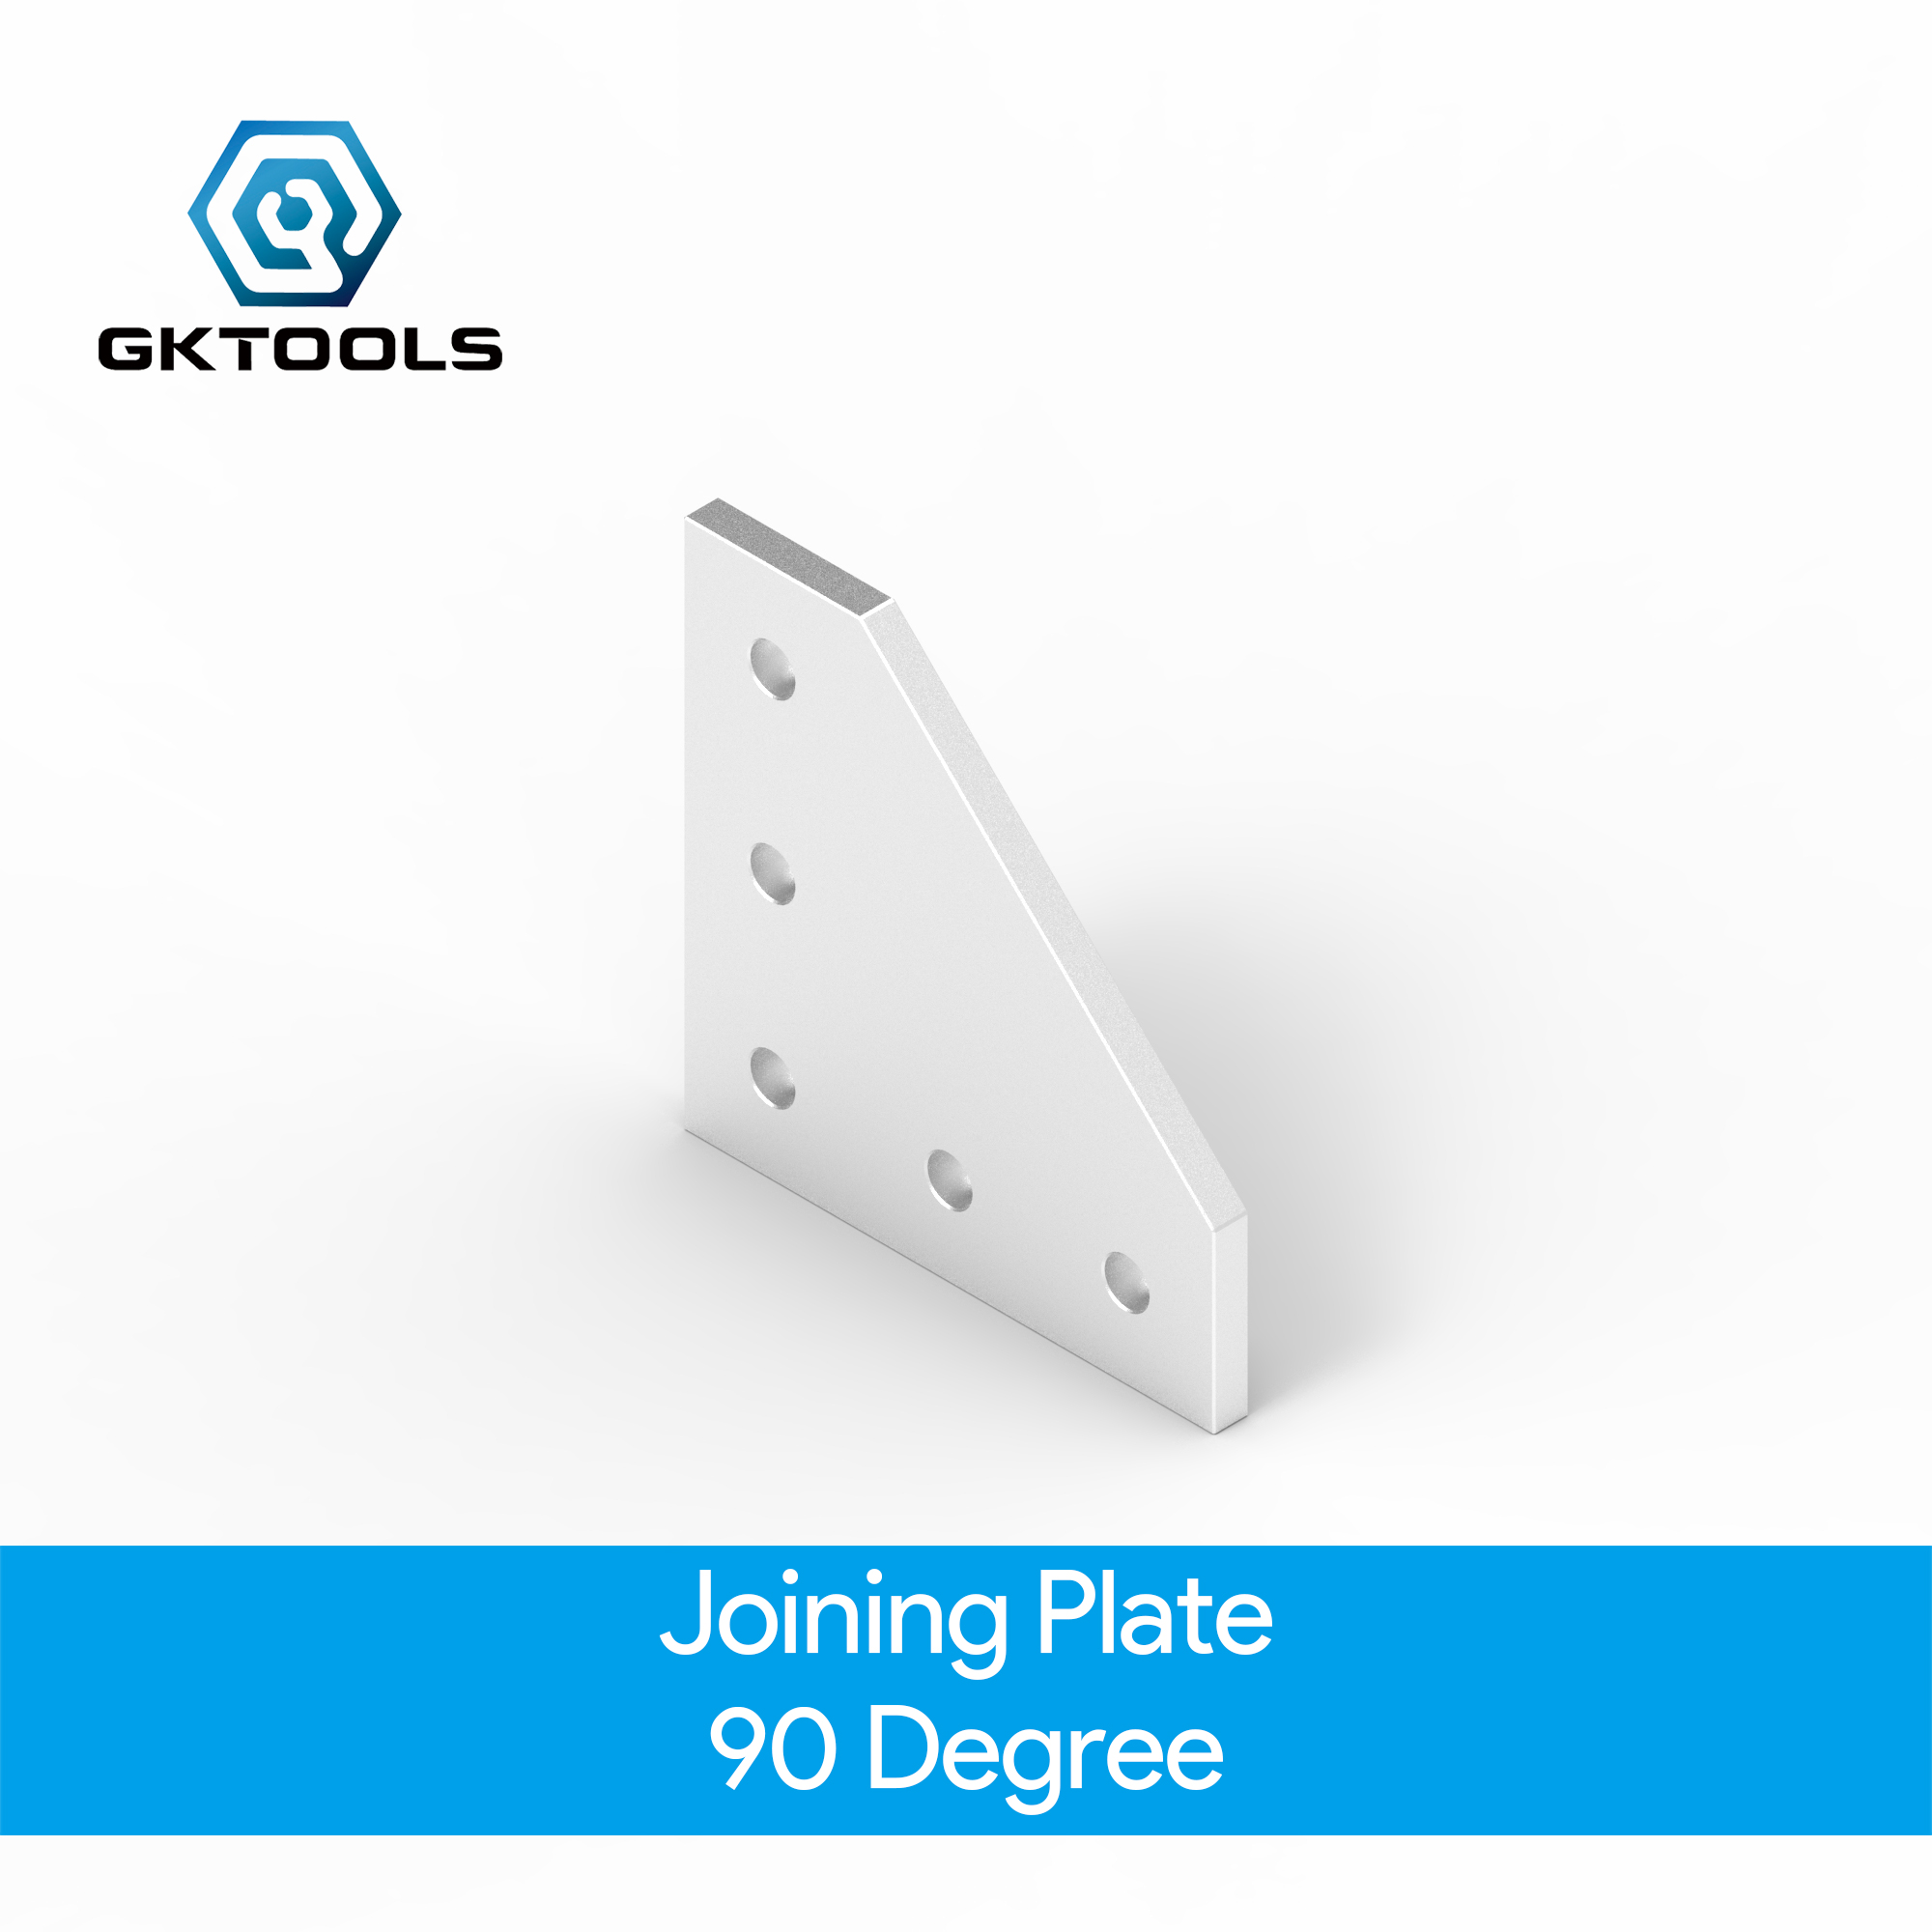 OpenBuilds 90 Degree Joining Plate